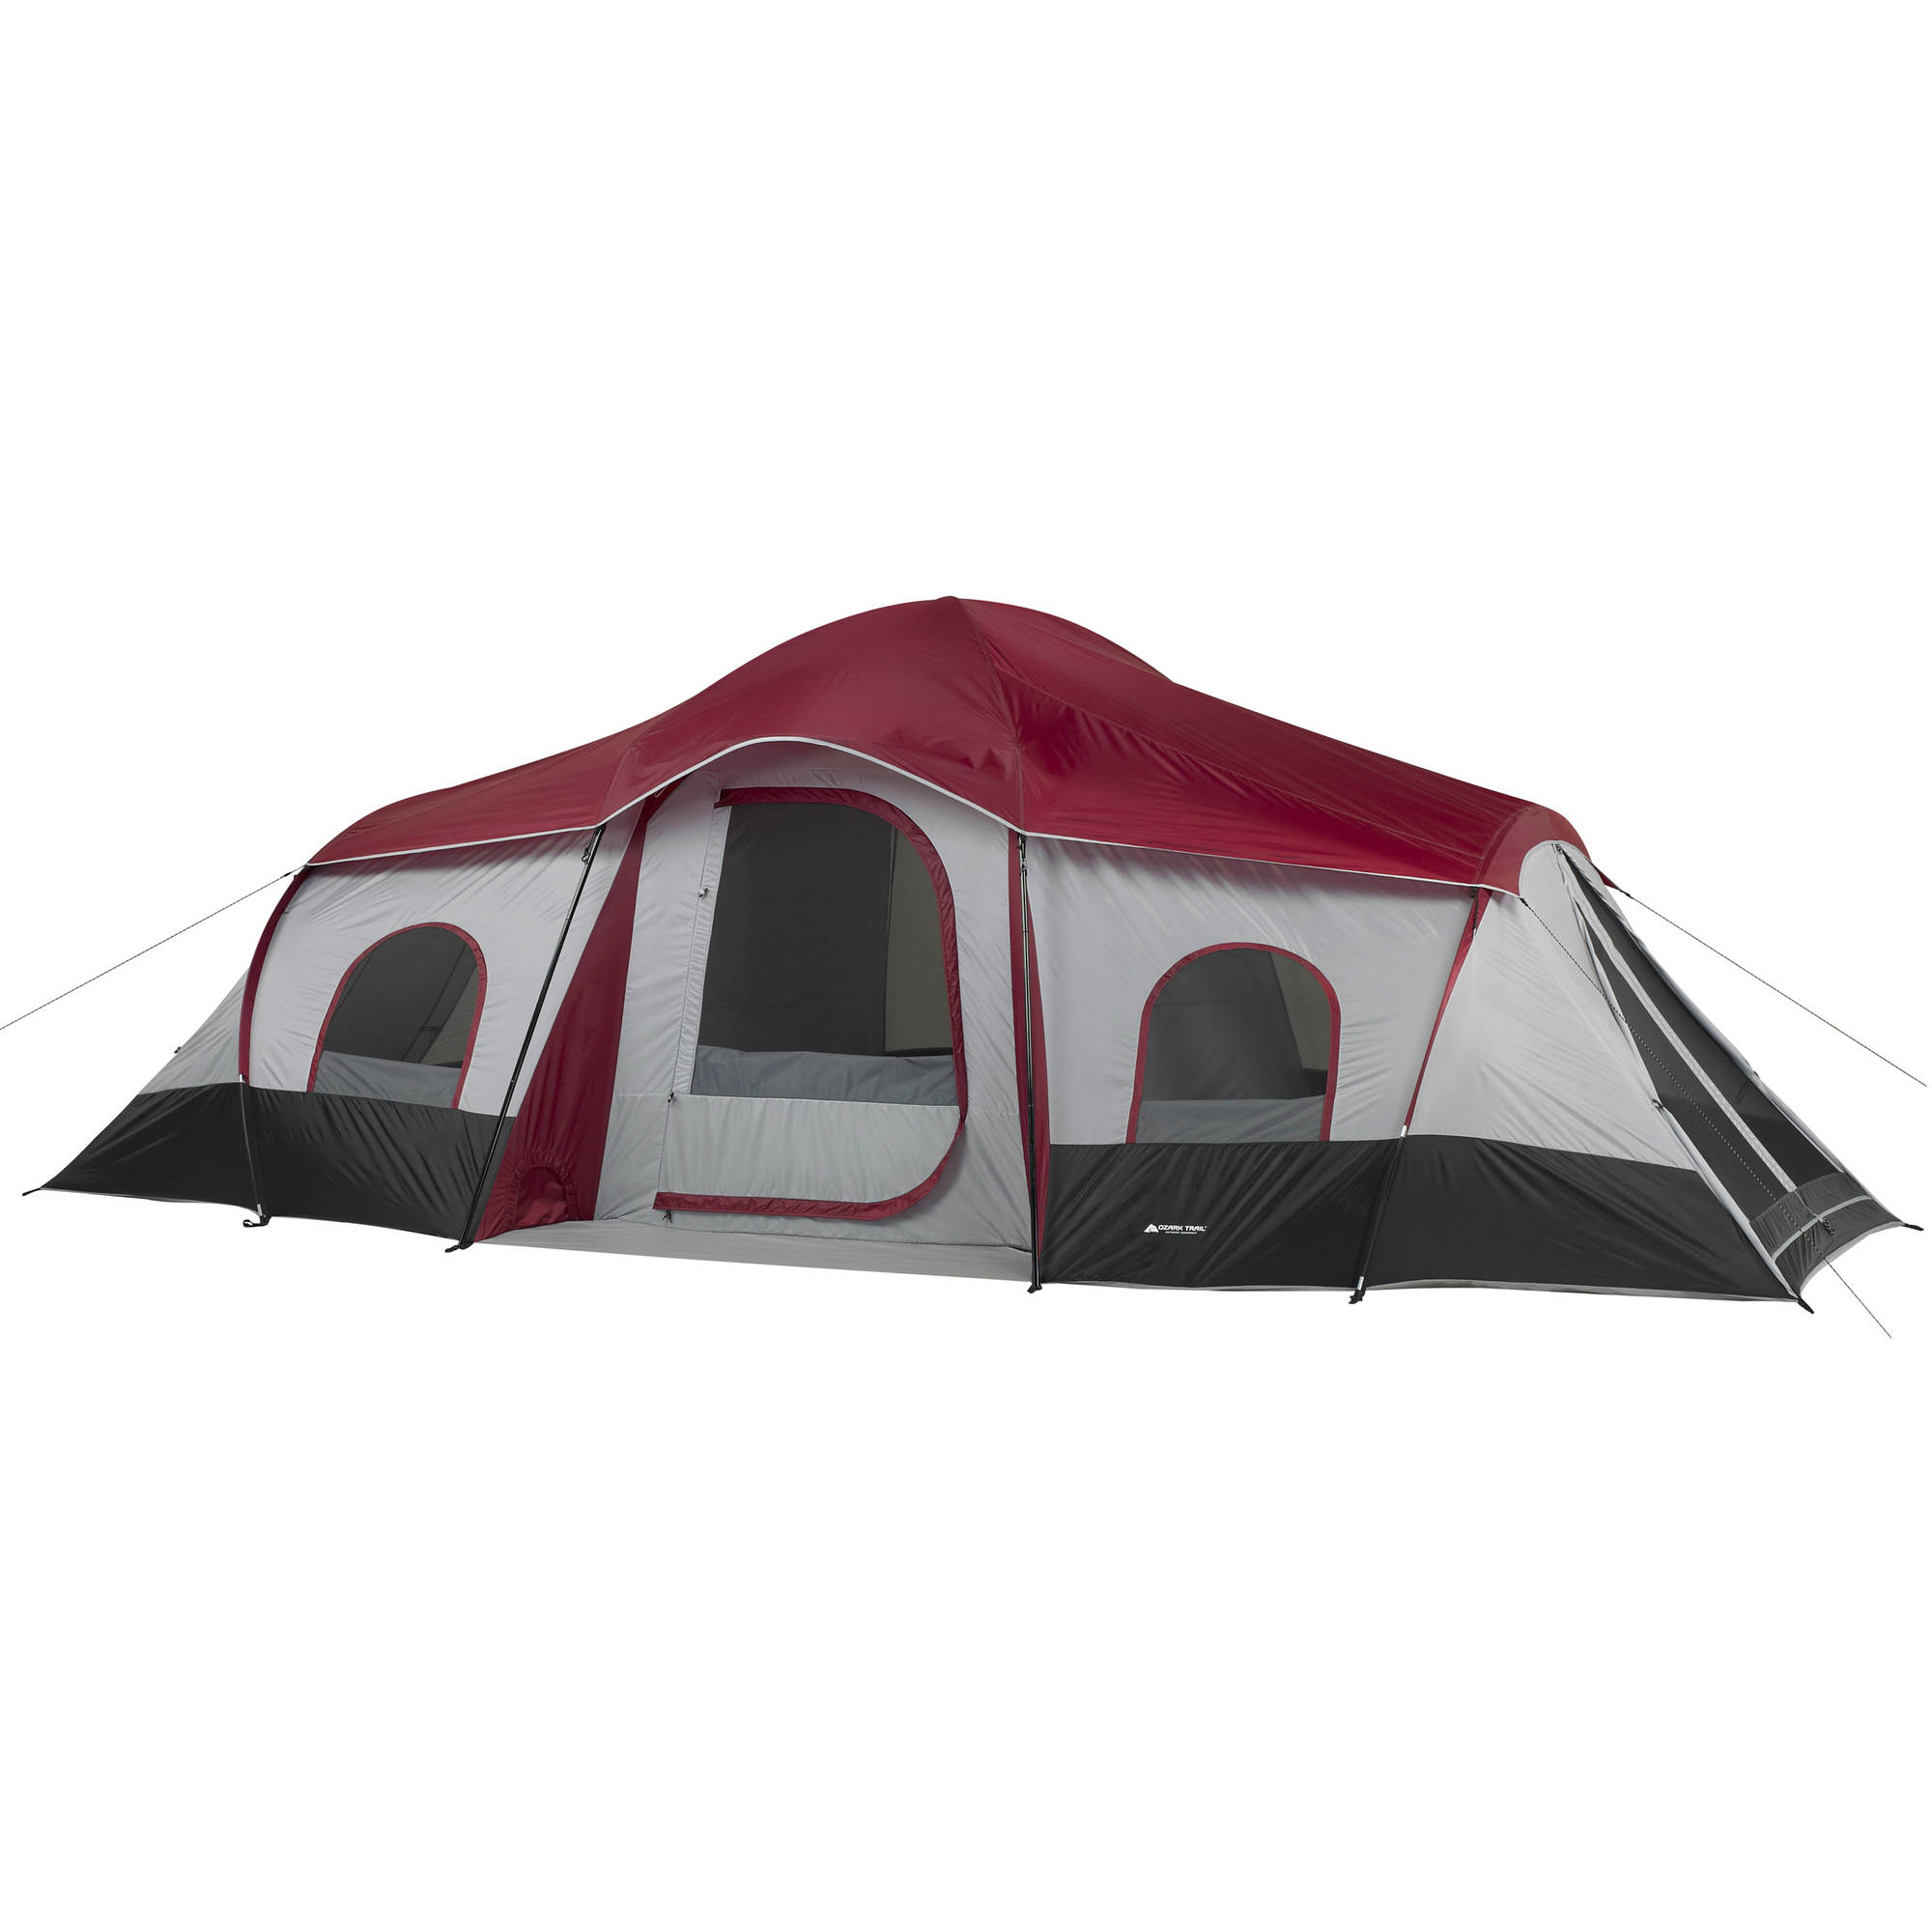 Cheap Ozark Trail 10 Person Cabin Tent Review